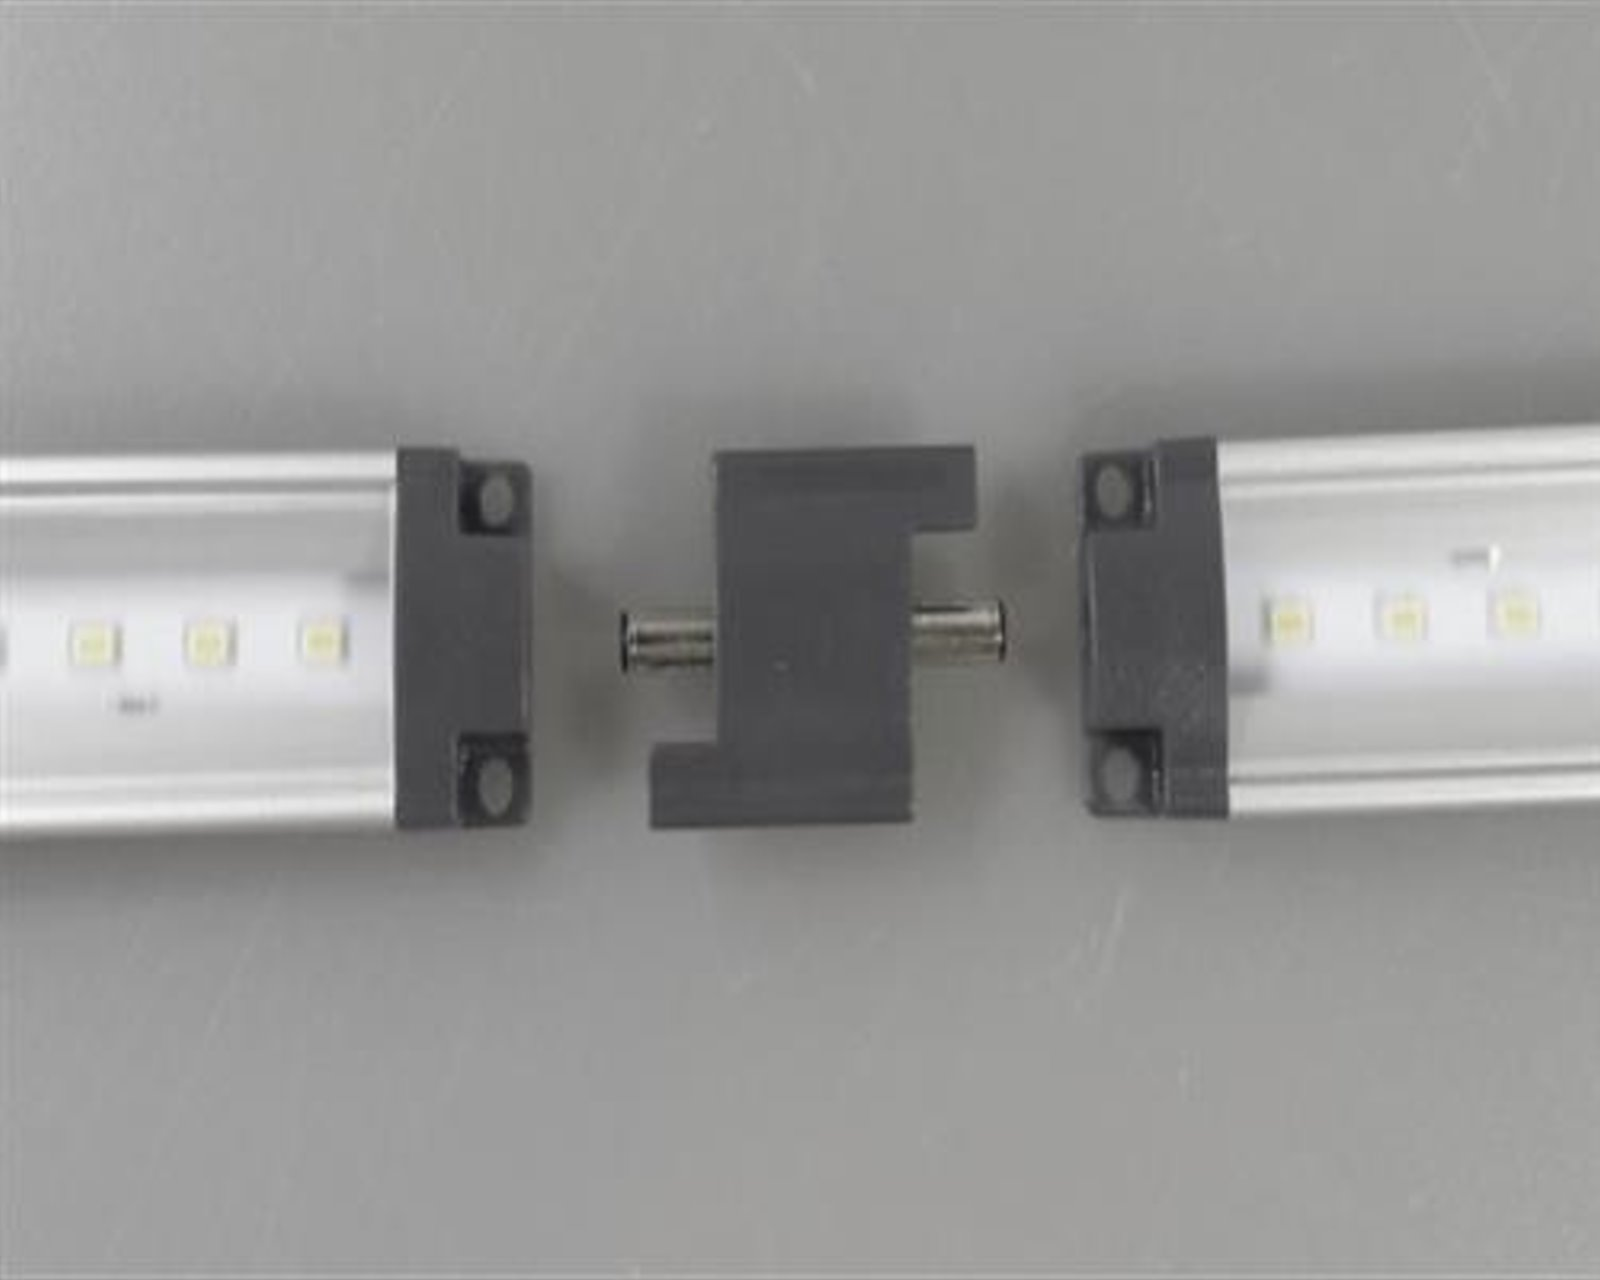 Led Unterbauleuchte Test Dimmbare Led Leiste Warm Wei 3chip Led Leiste 12v 30 X